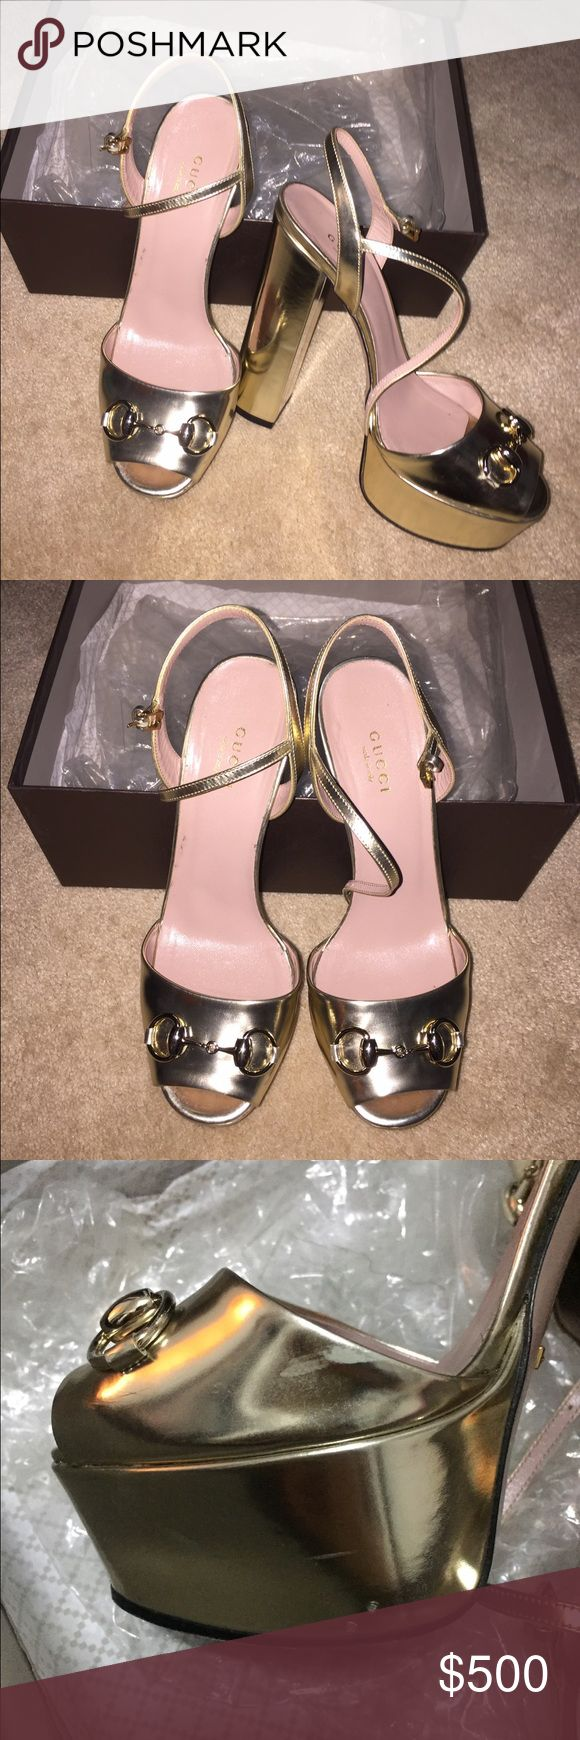 Gucci Heels Amazing heels, worn only once. One of them have tiny scratches, but that's normals with this type of skin, cause in store almost all the brand new unworn pairs had already scratches. Box, dustbag. Contact me prior to purchase, I'm not in US now, we can do ️️ too. Gucci Shoes Heels